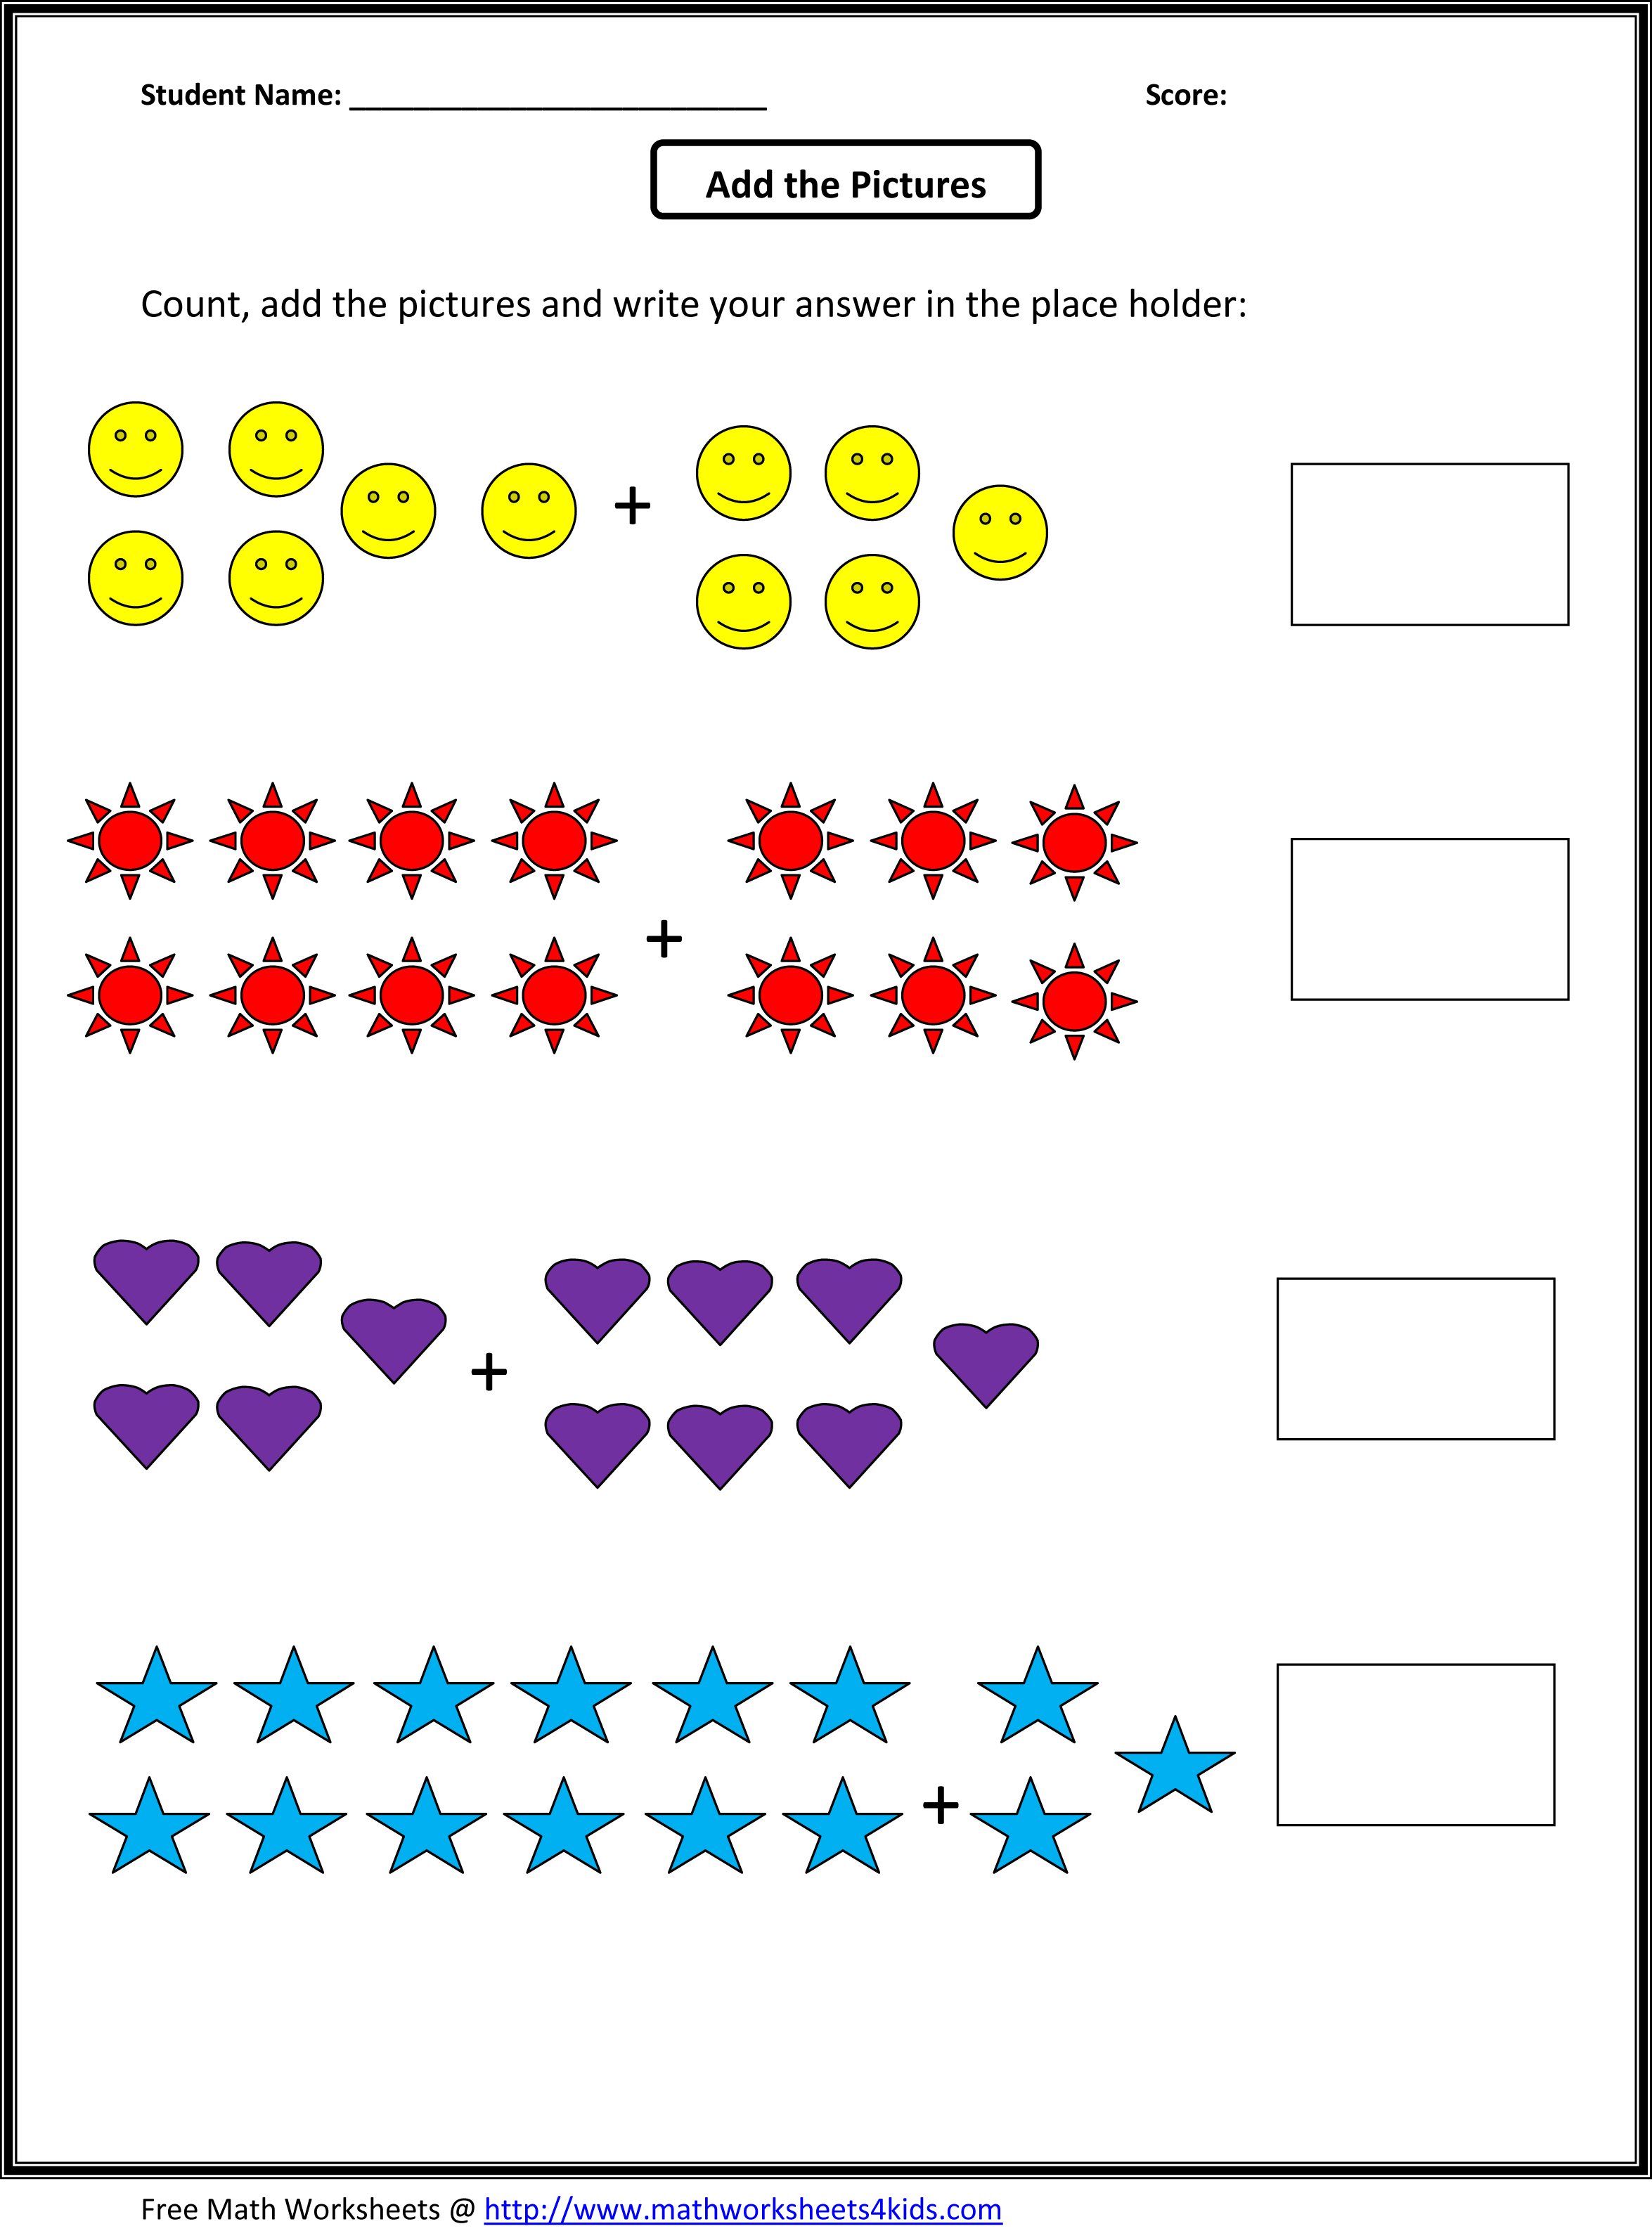 Aldiablosus  Winning Grade  Maths Worksheet  Reocurent With Lovable Math Worksheets For St Grade Free  Reocurent With Cool Unit Rates With Fractions Worksheet Also Create Pivot Table From Multiple Worksheets In Addition Reading Comprehension Worksheets Grade  And Script Handwriting Worksheets As Well As Interpersonal Skills Worksheets Additionally Science Worksheets Pdf From Reocurentcom With Aldiablosus  Lovable Grade  Maths Worksheet  Reocurent With Cool Math Worksheets For St Grade Free  Reocurent And Winning Unit Rates With Fractions Worksheet Also Create Pivot Table From Multiple Worksheets In Addition Reading Comprehension Worksheets Grade  From Reocurentcom